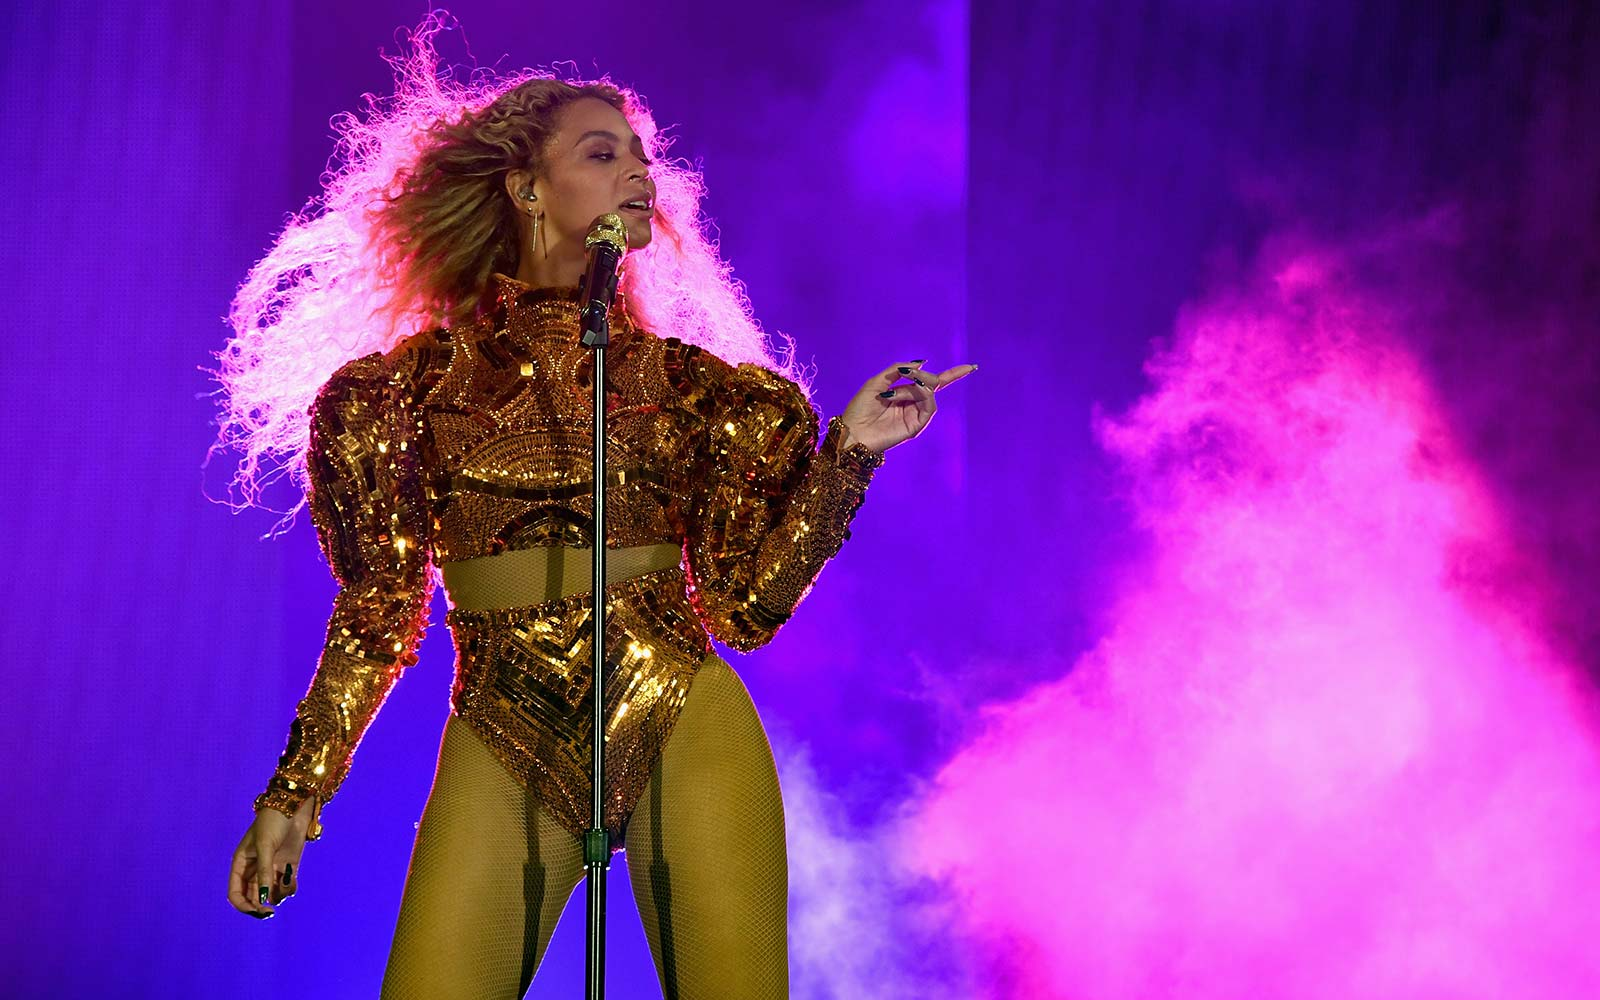 The Coachella Lineup Has Been Announced, and Beyoncé Is Finally Headlining